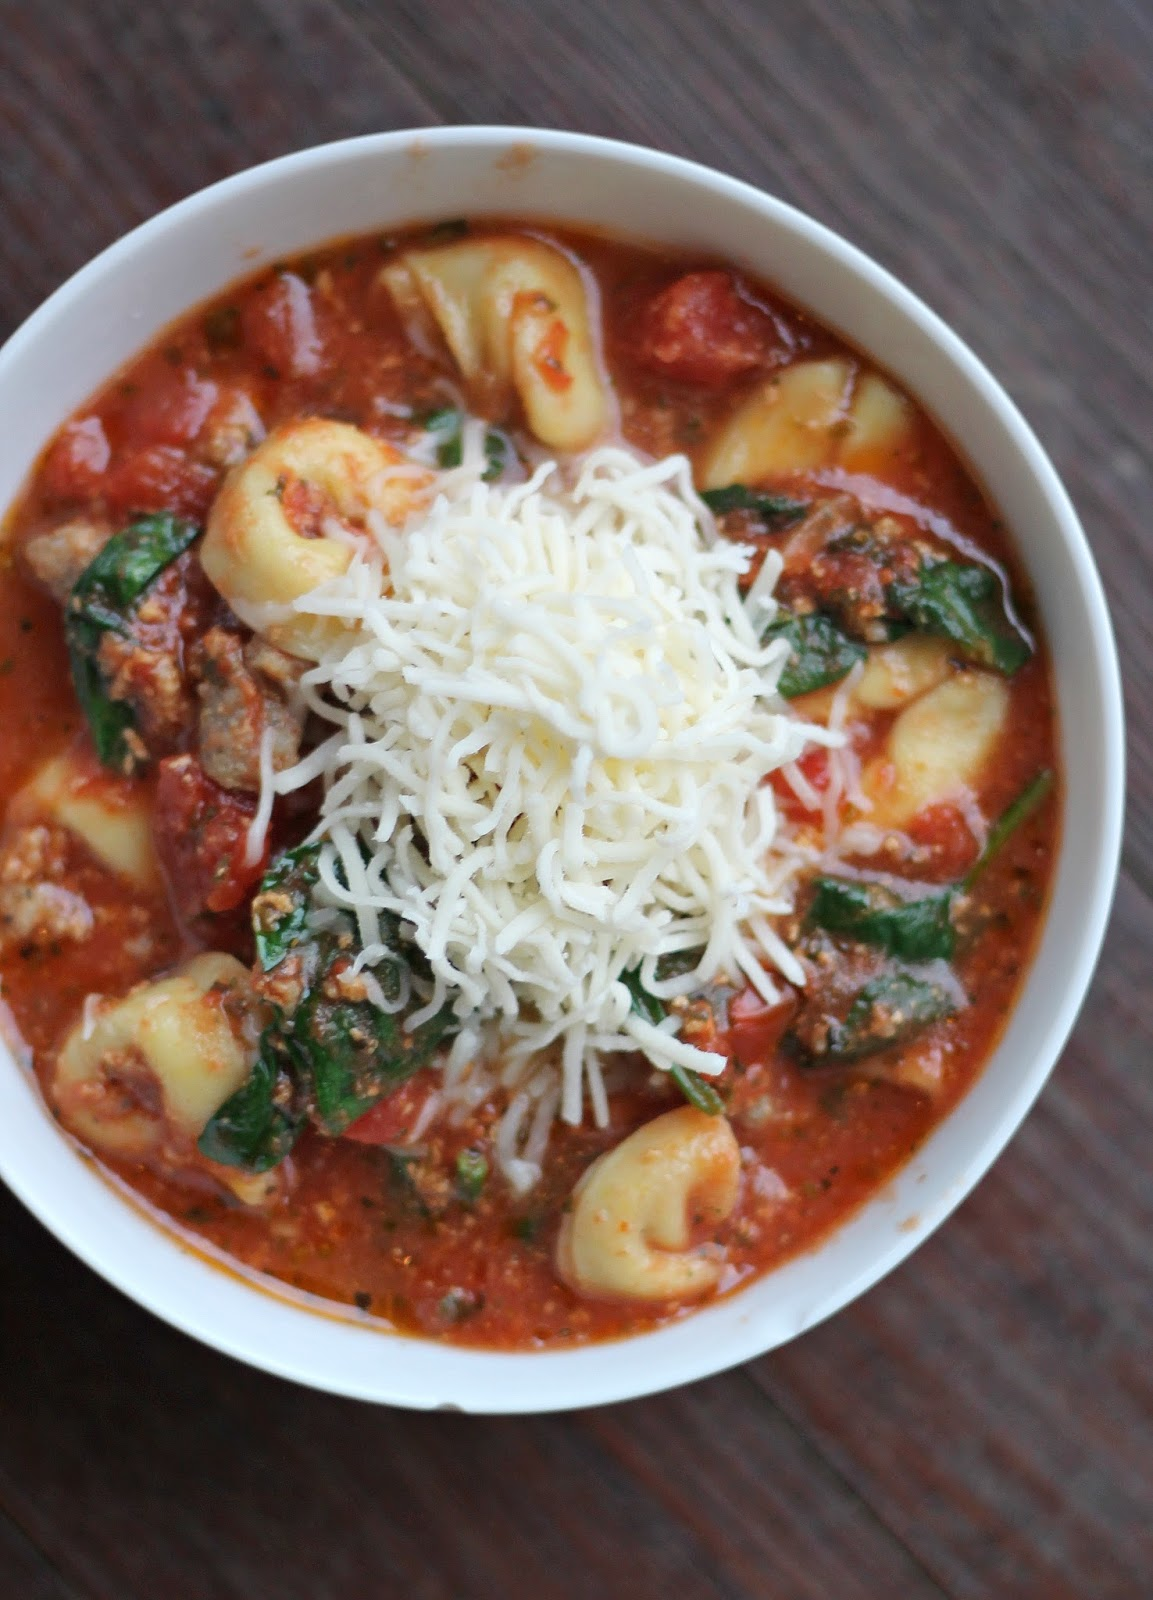 North Carolina lifestyle blogger, Christina shares a delicious Sausage & Cheese Tortellini soup recipe!